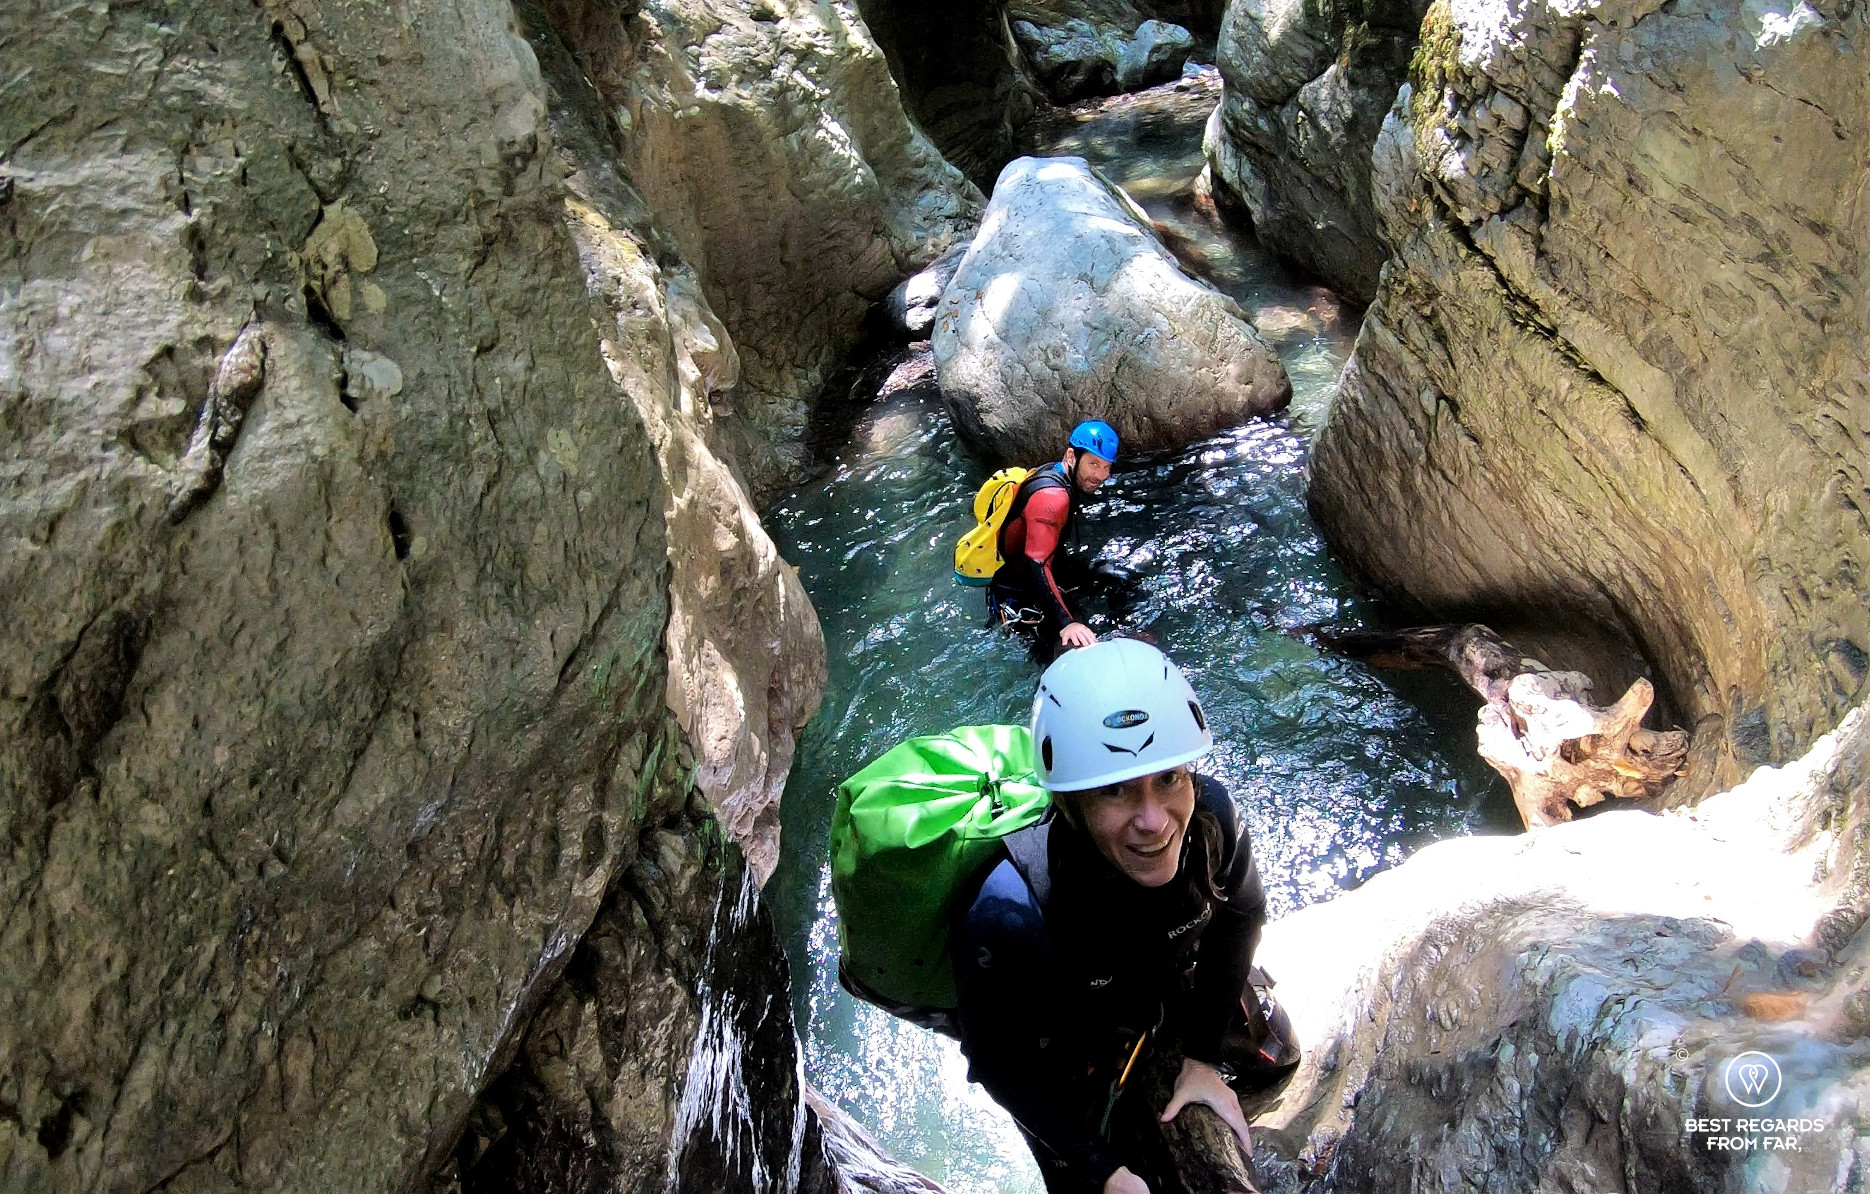 Canyoning Rio Selvano by Bagni di Lucca, Italy.